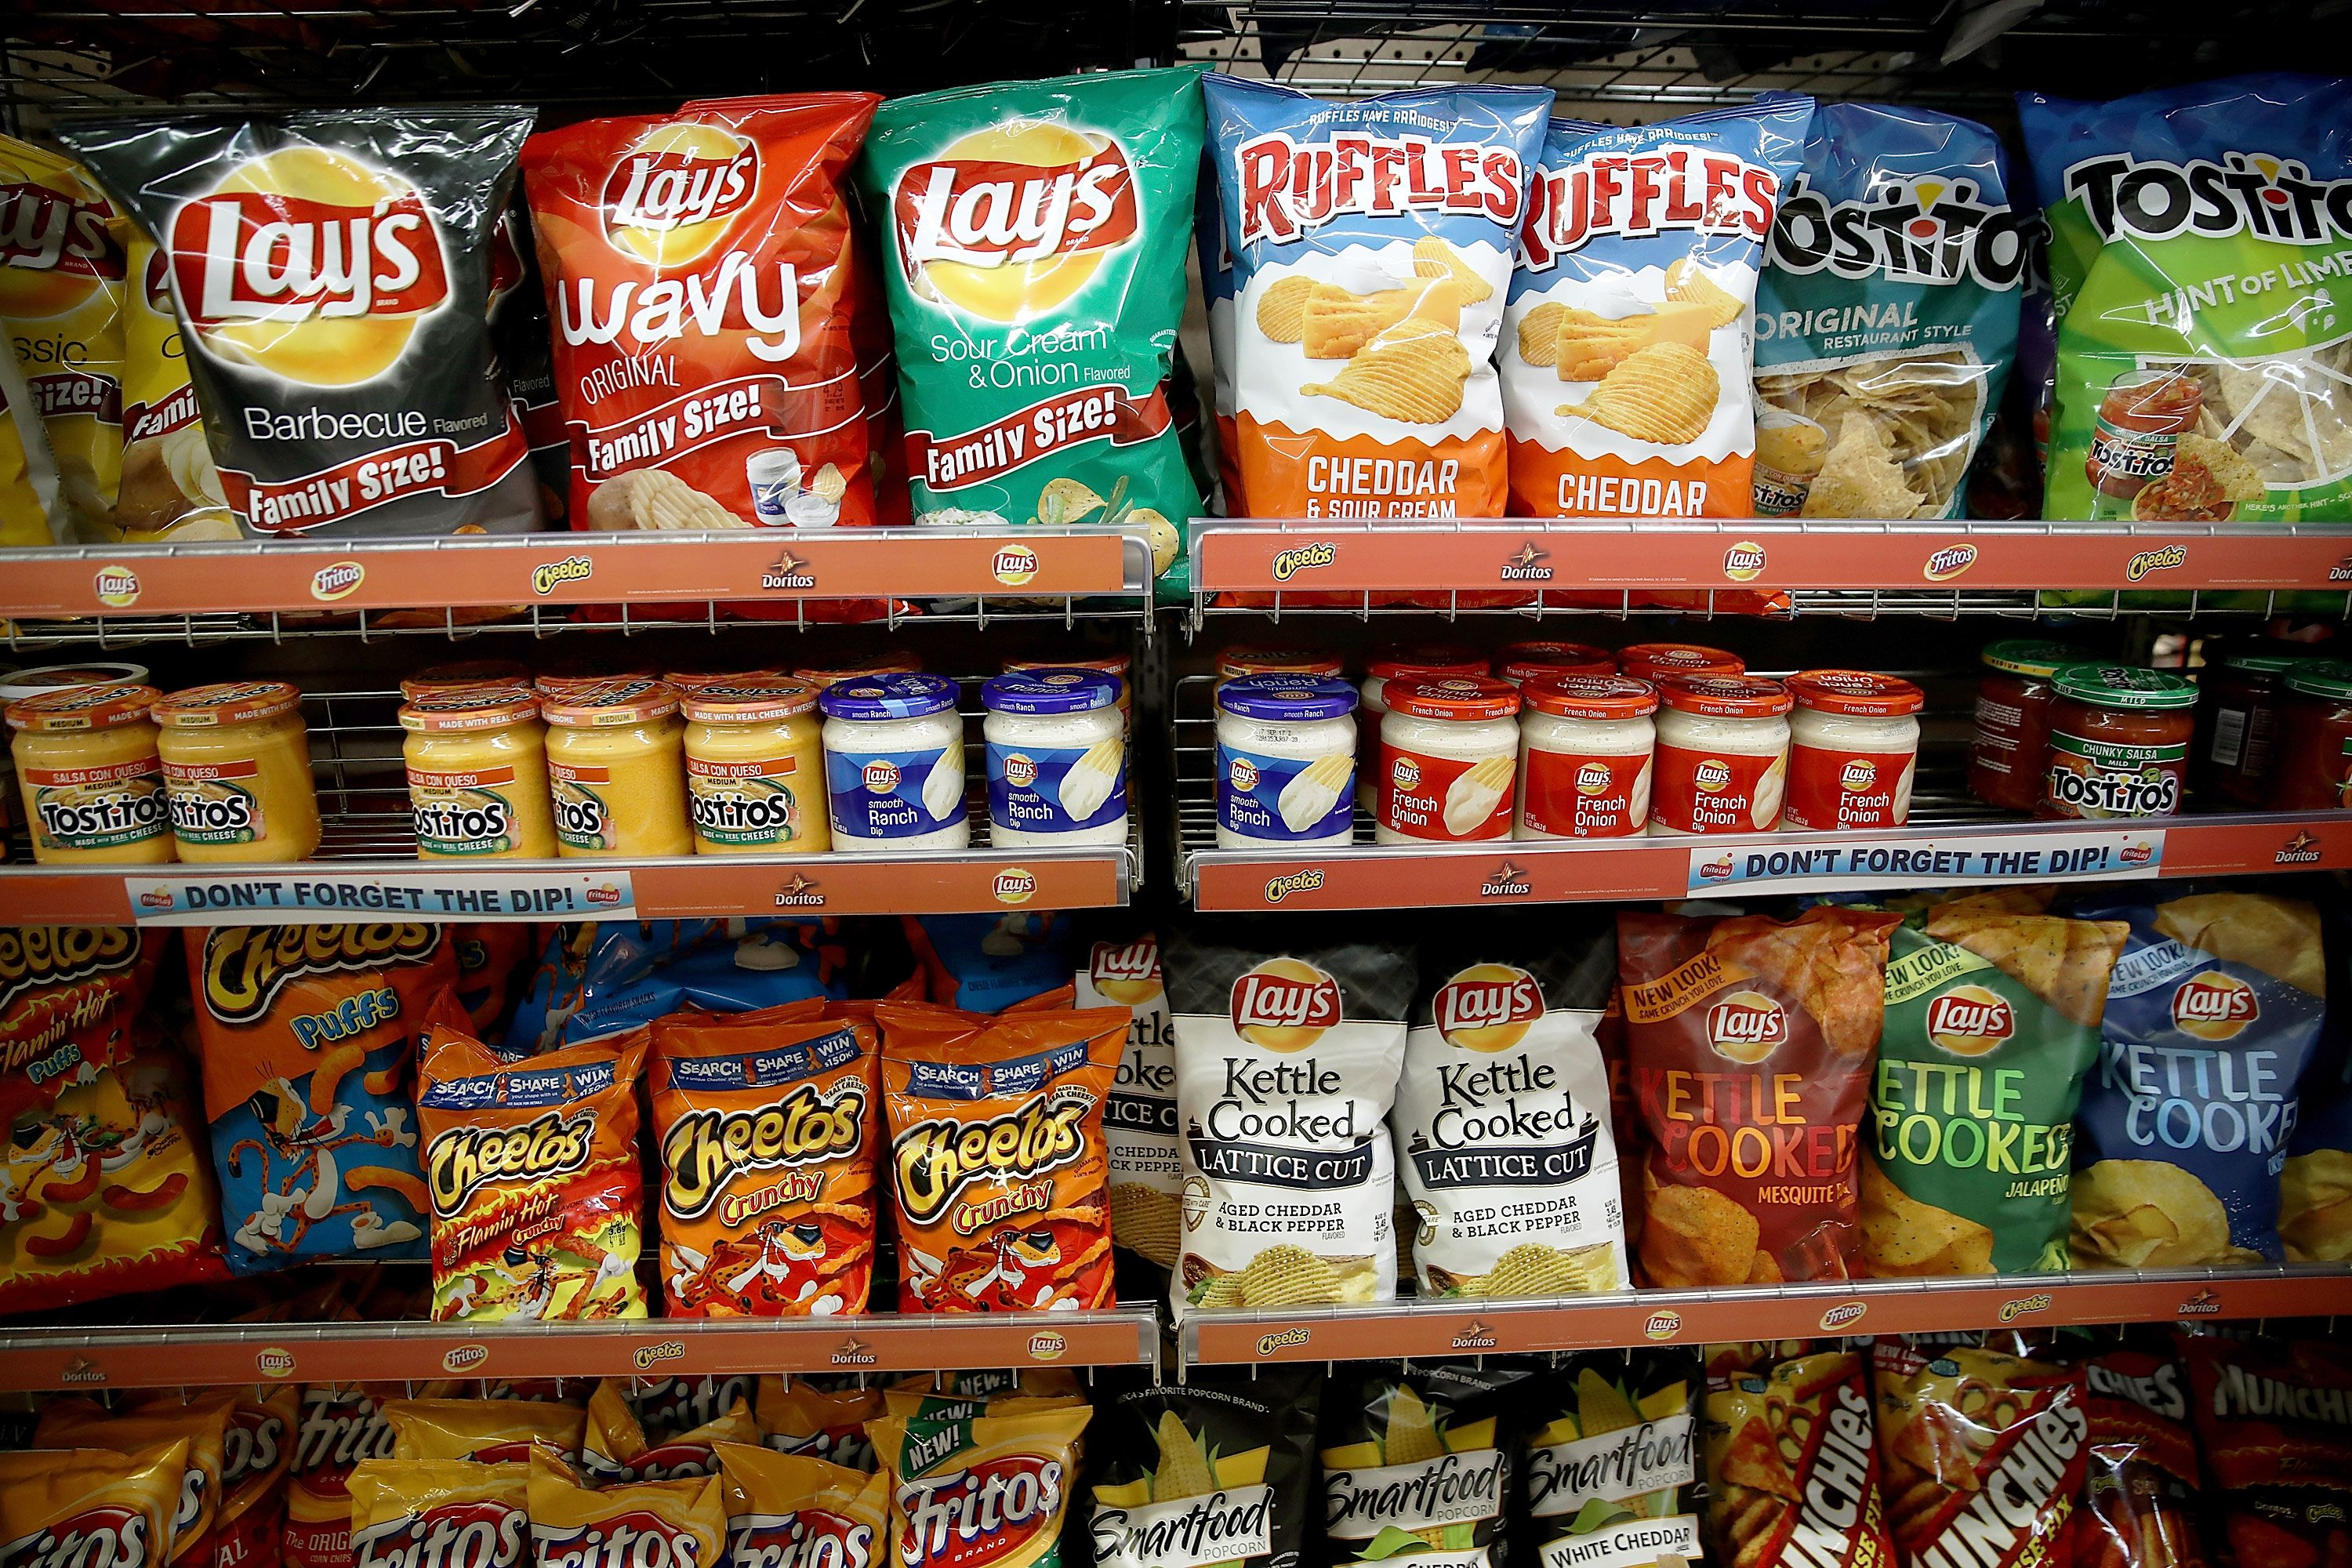 Bags Frito Lay chips are displayed on a shelf at Santa Venetia Market on July 11, 2017 in San Rafael, California. PepsiCo reported a better-than-expected second quarter earnings with revenue of $15.71 billion that was fueled by price hikes in its Frito Lay snack division.